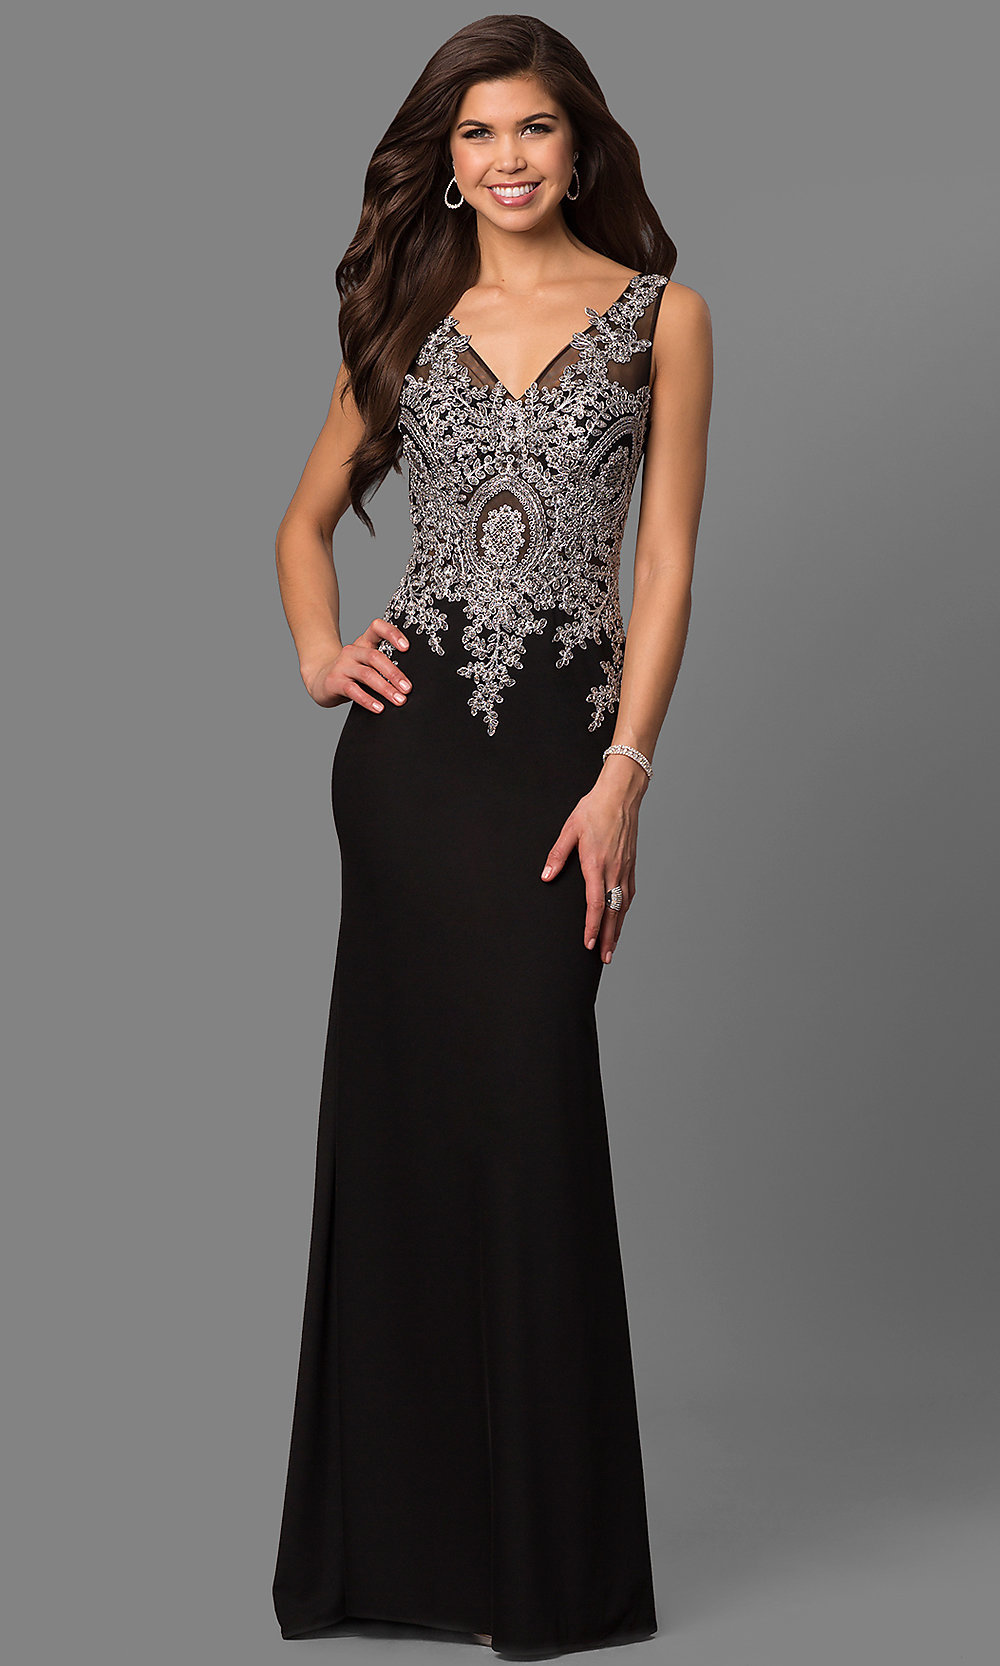 Black Evening Dress with Lace Bodice - PromGirl